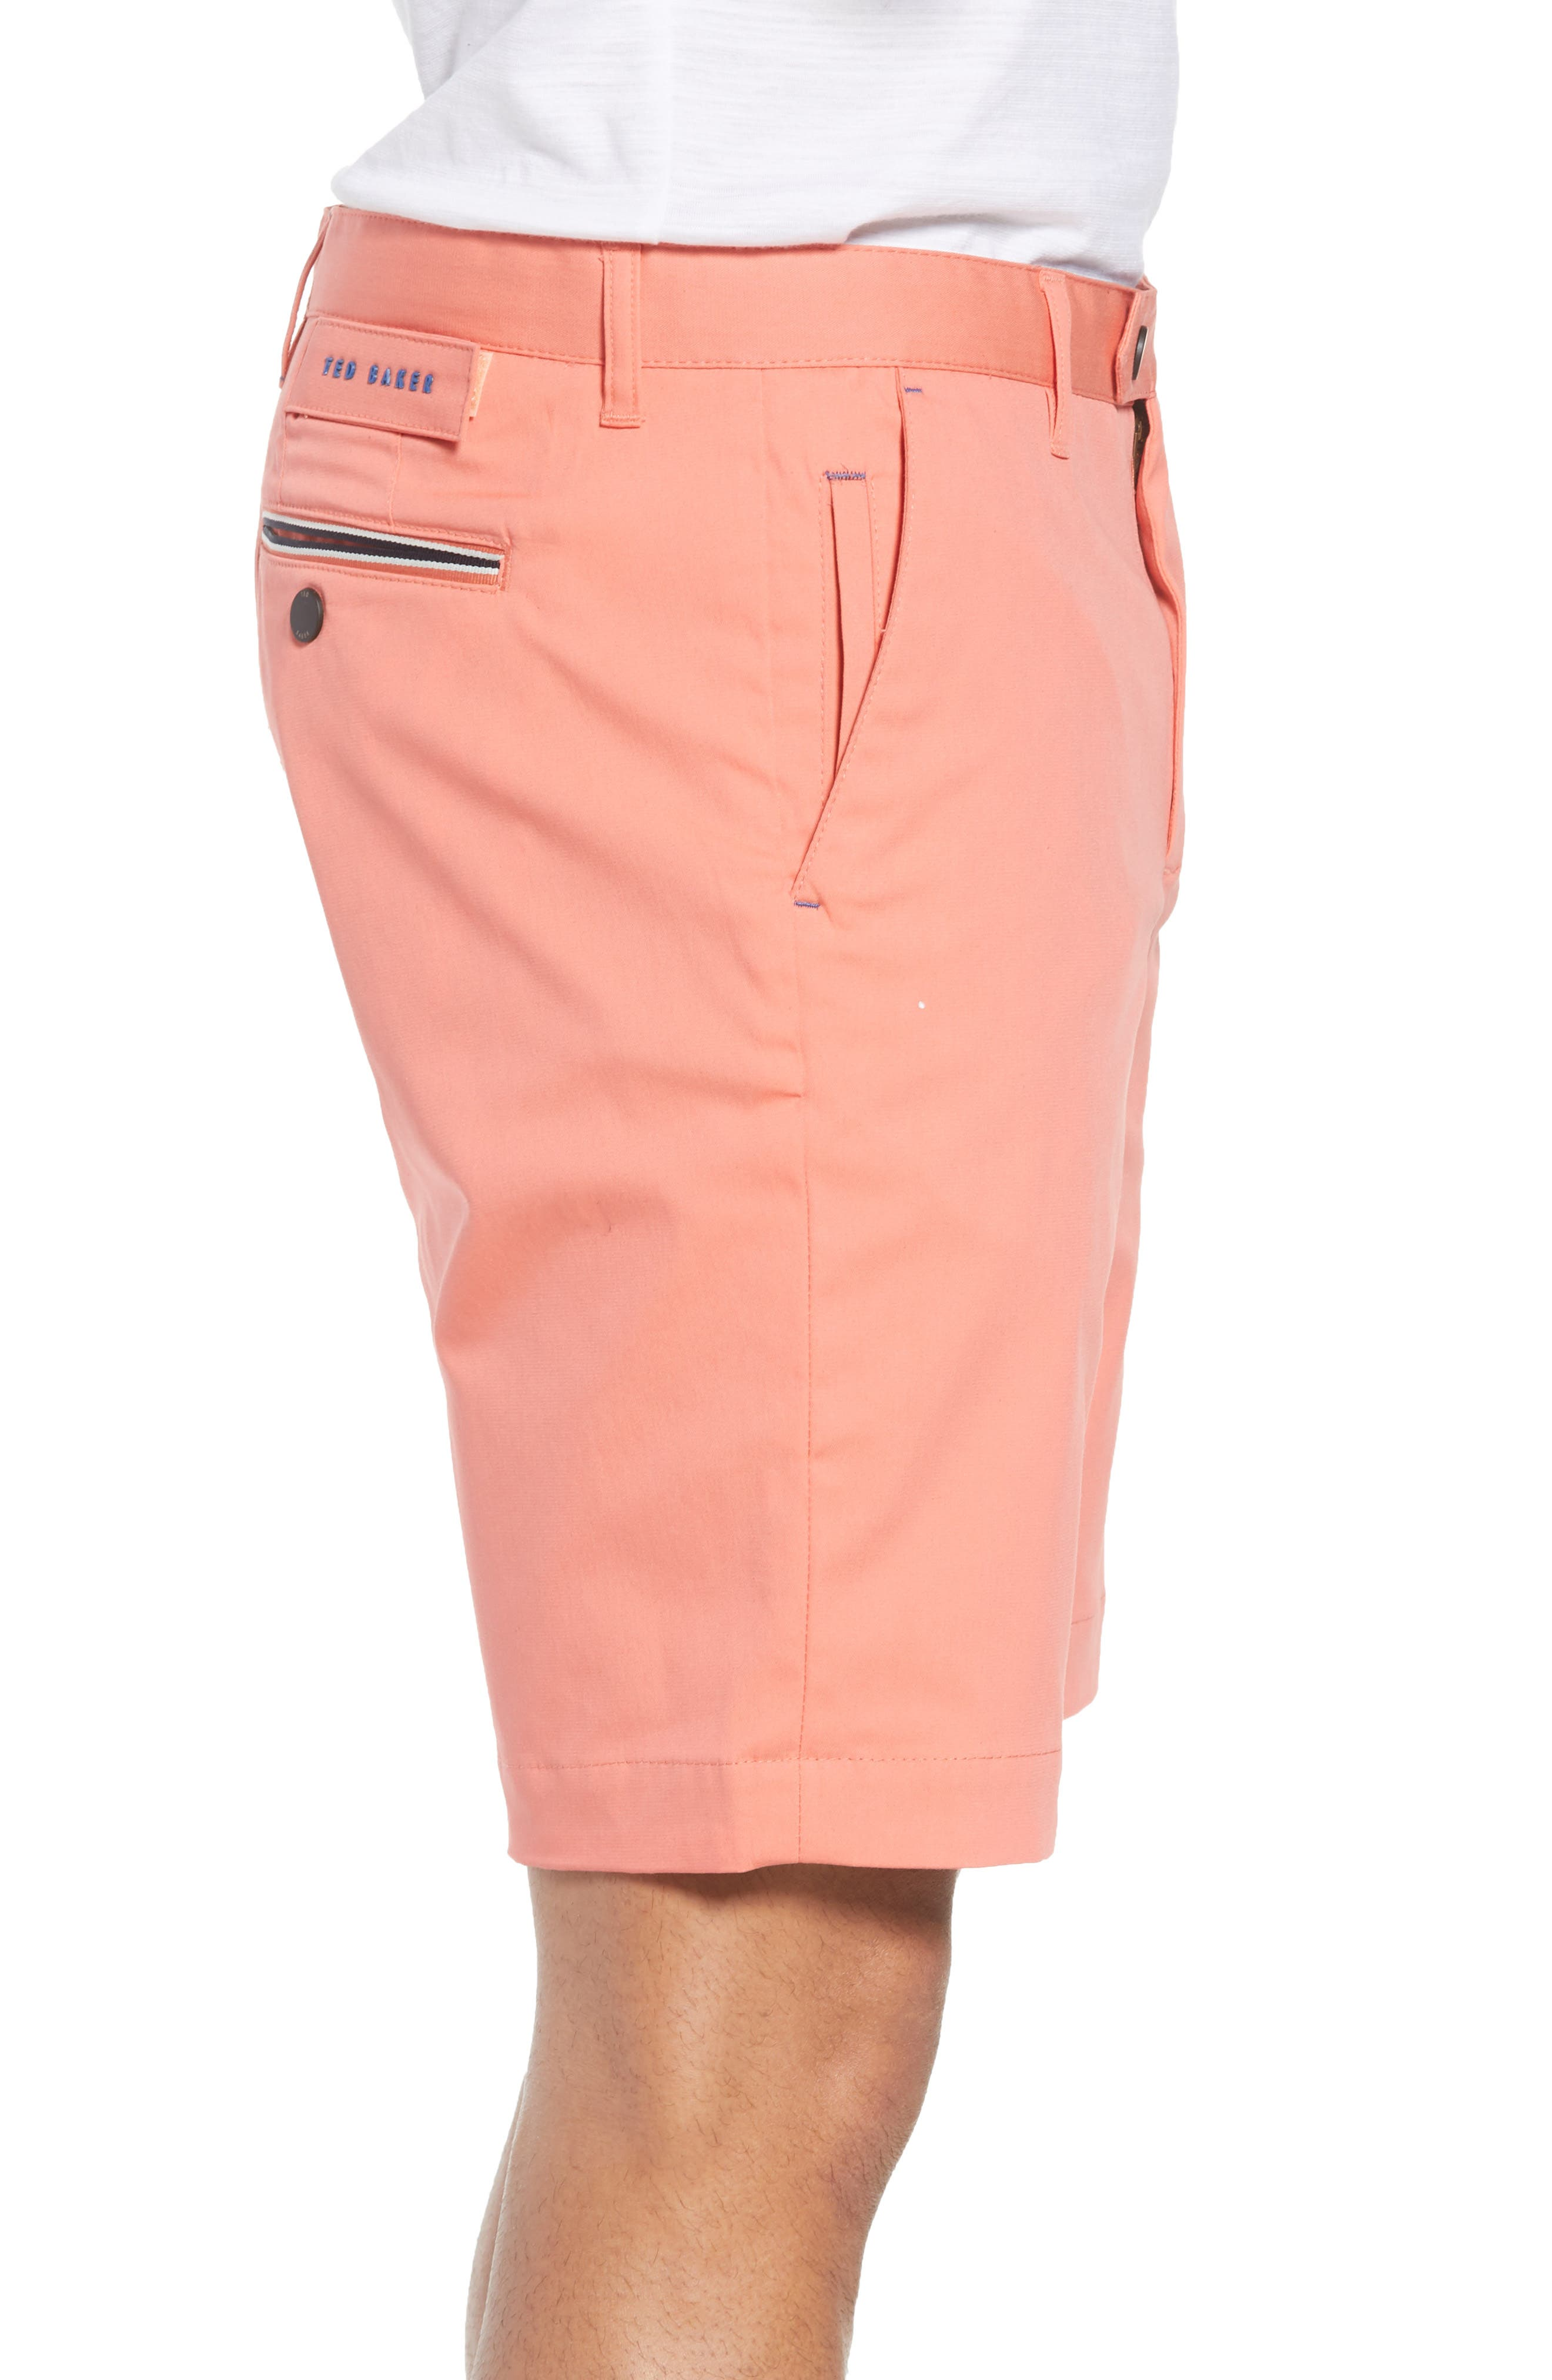 Twopar Flat Front Shorts,                             Alternate thumbnail 3, color,                             Coral